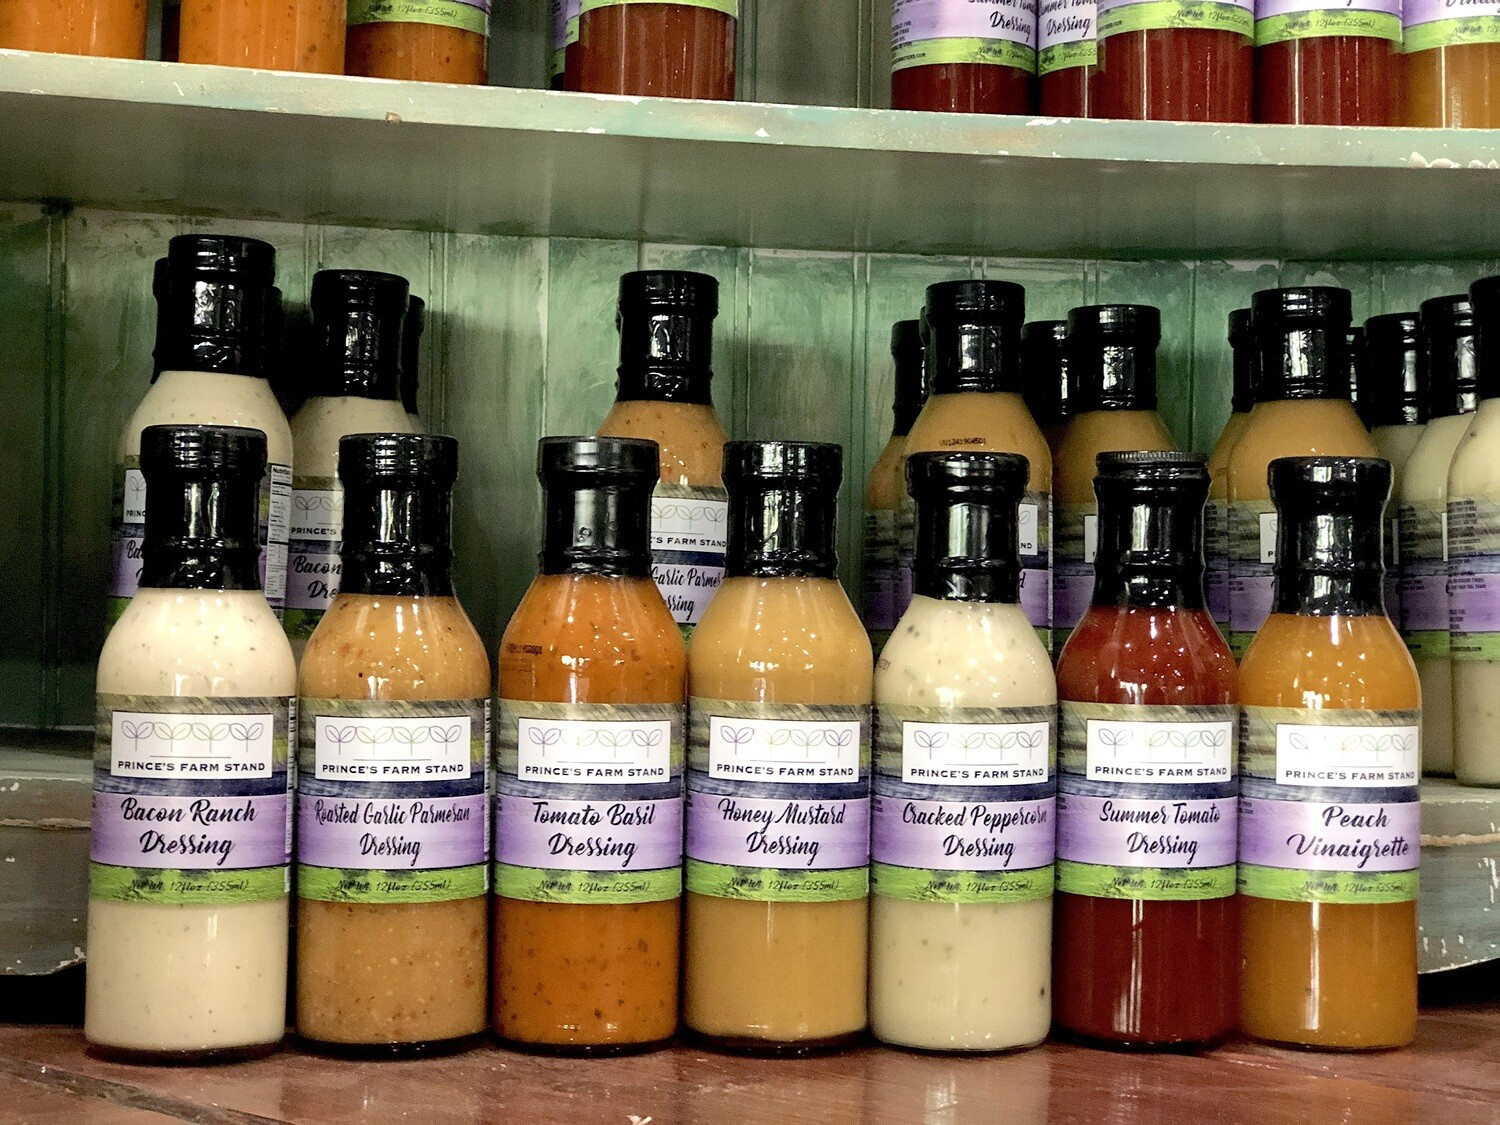 Prince's Farm Stand Salad Dressings & Vinaigrettes (Assorted Varieties)